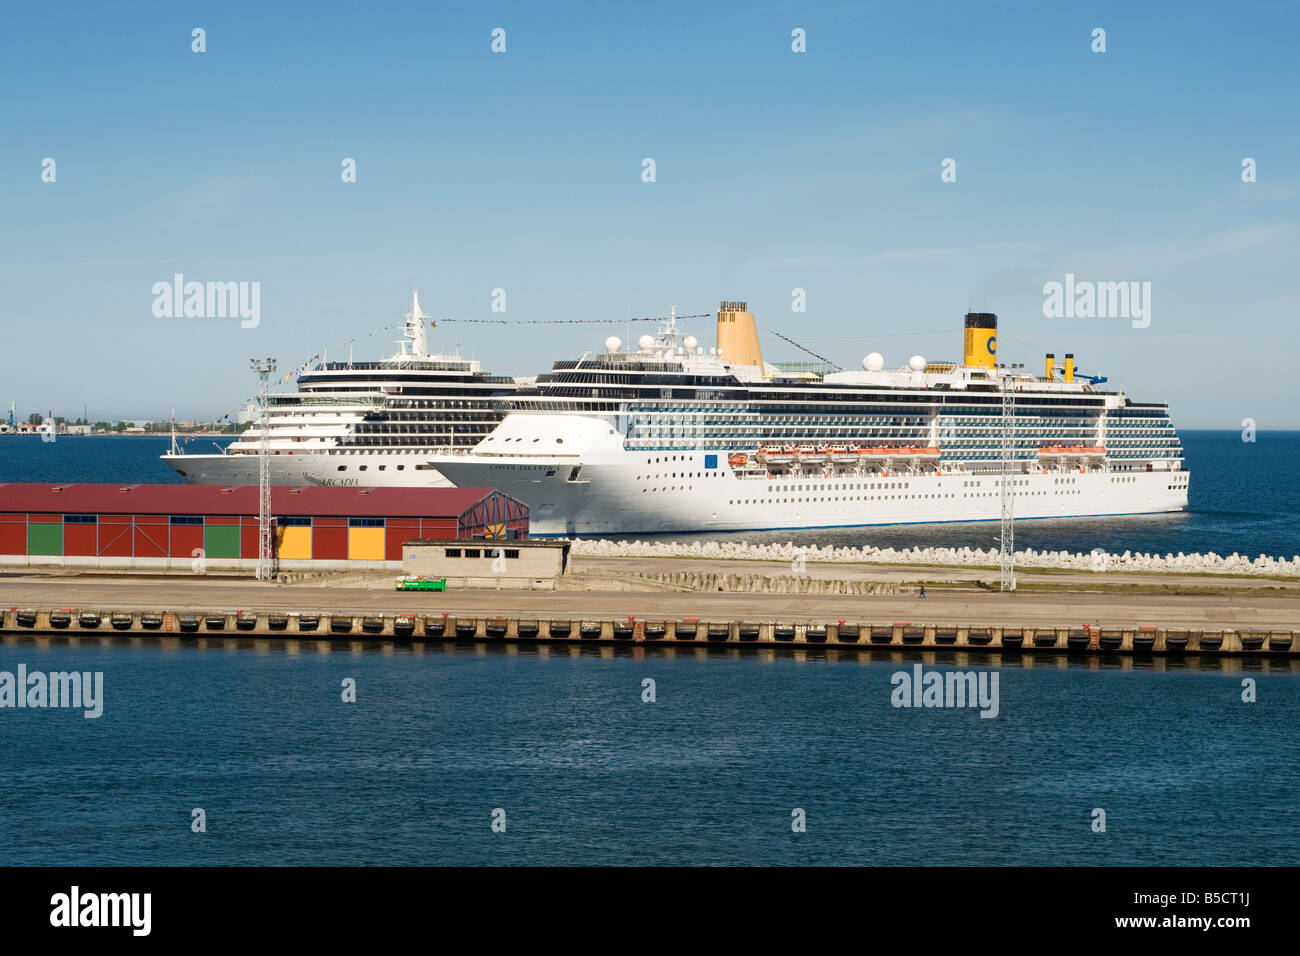 Cruise ships Arcadia and Costa Atlantica berthed at the harbour in Tallinn, Estonia - Stock Image